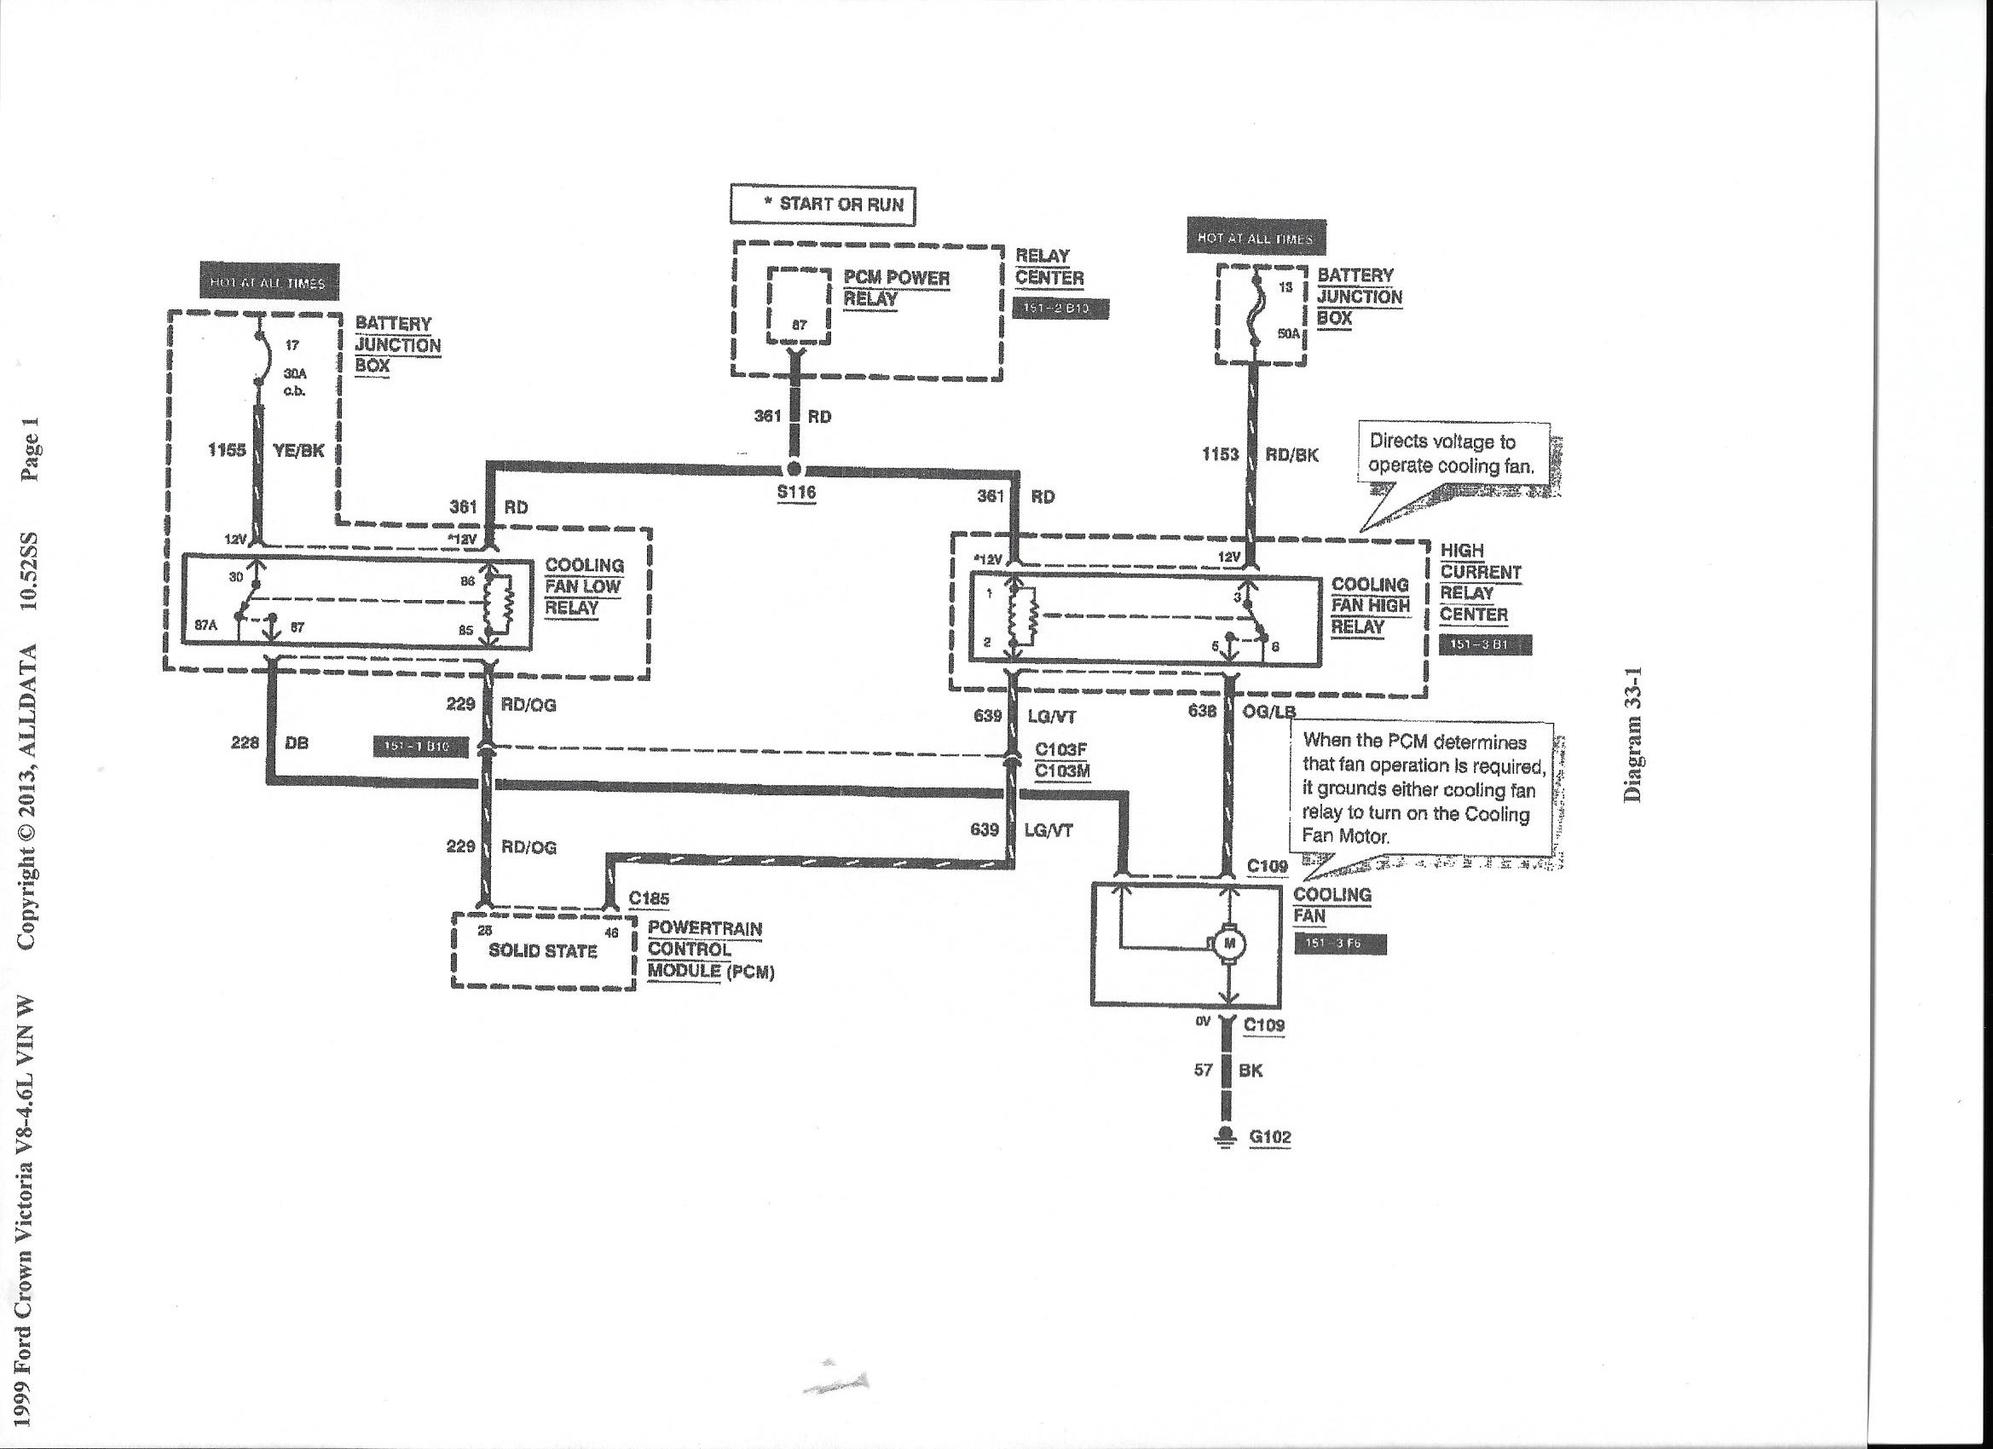 vdo tach gen wiring diagram with Isspro Pyrometer Wiring Diagram on Sunpro Gauges Wiring Diagram likewise Smiths Rev Counter Wiring Diagram also Sel Tachometer Wiring Diagram as well  additionally Vdo Tach Wiring Diagram.